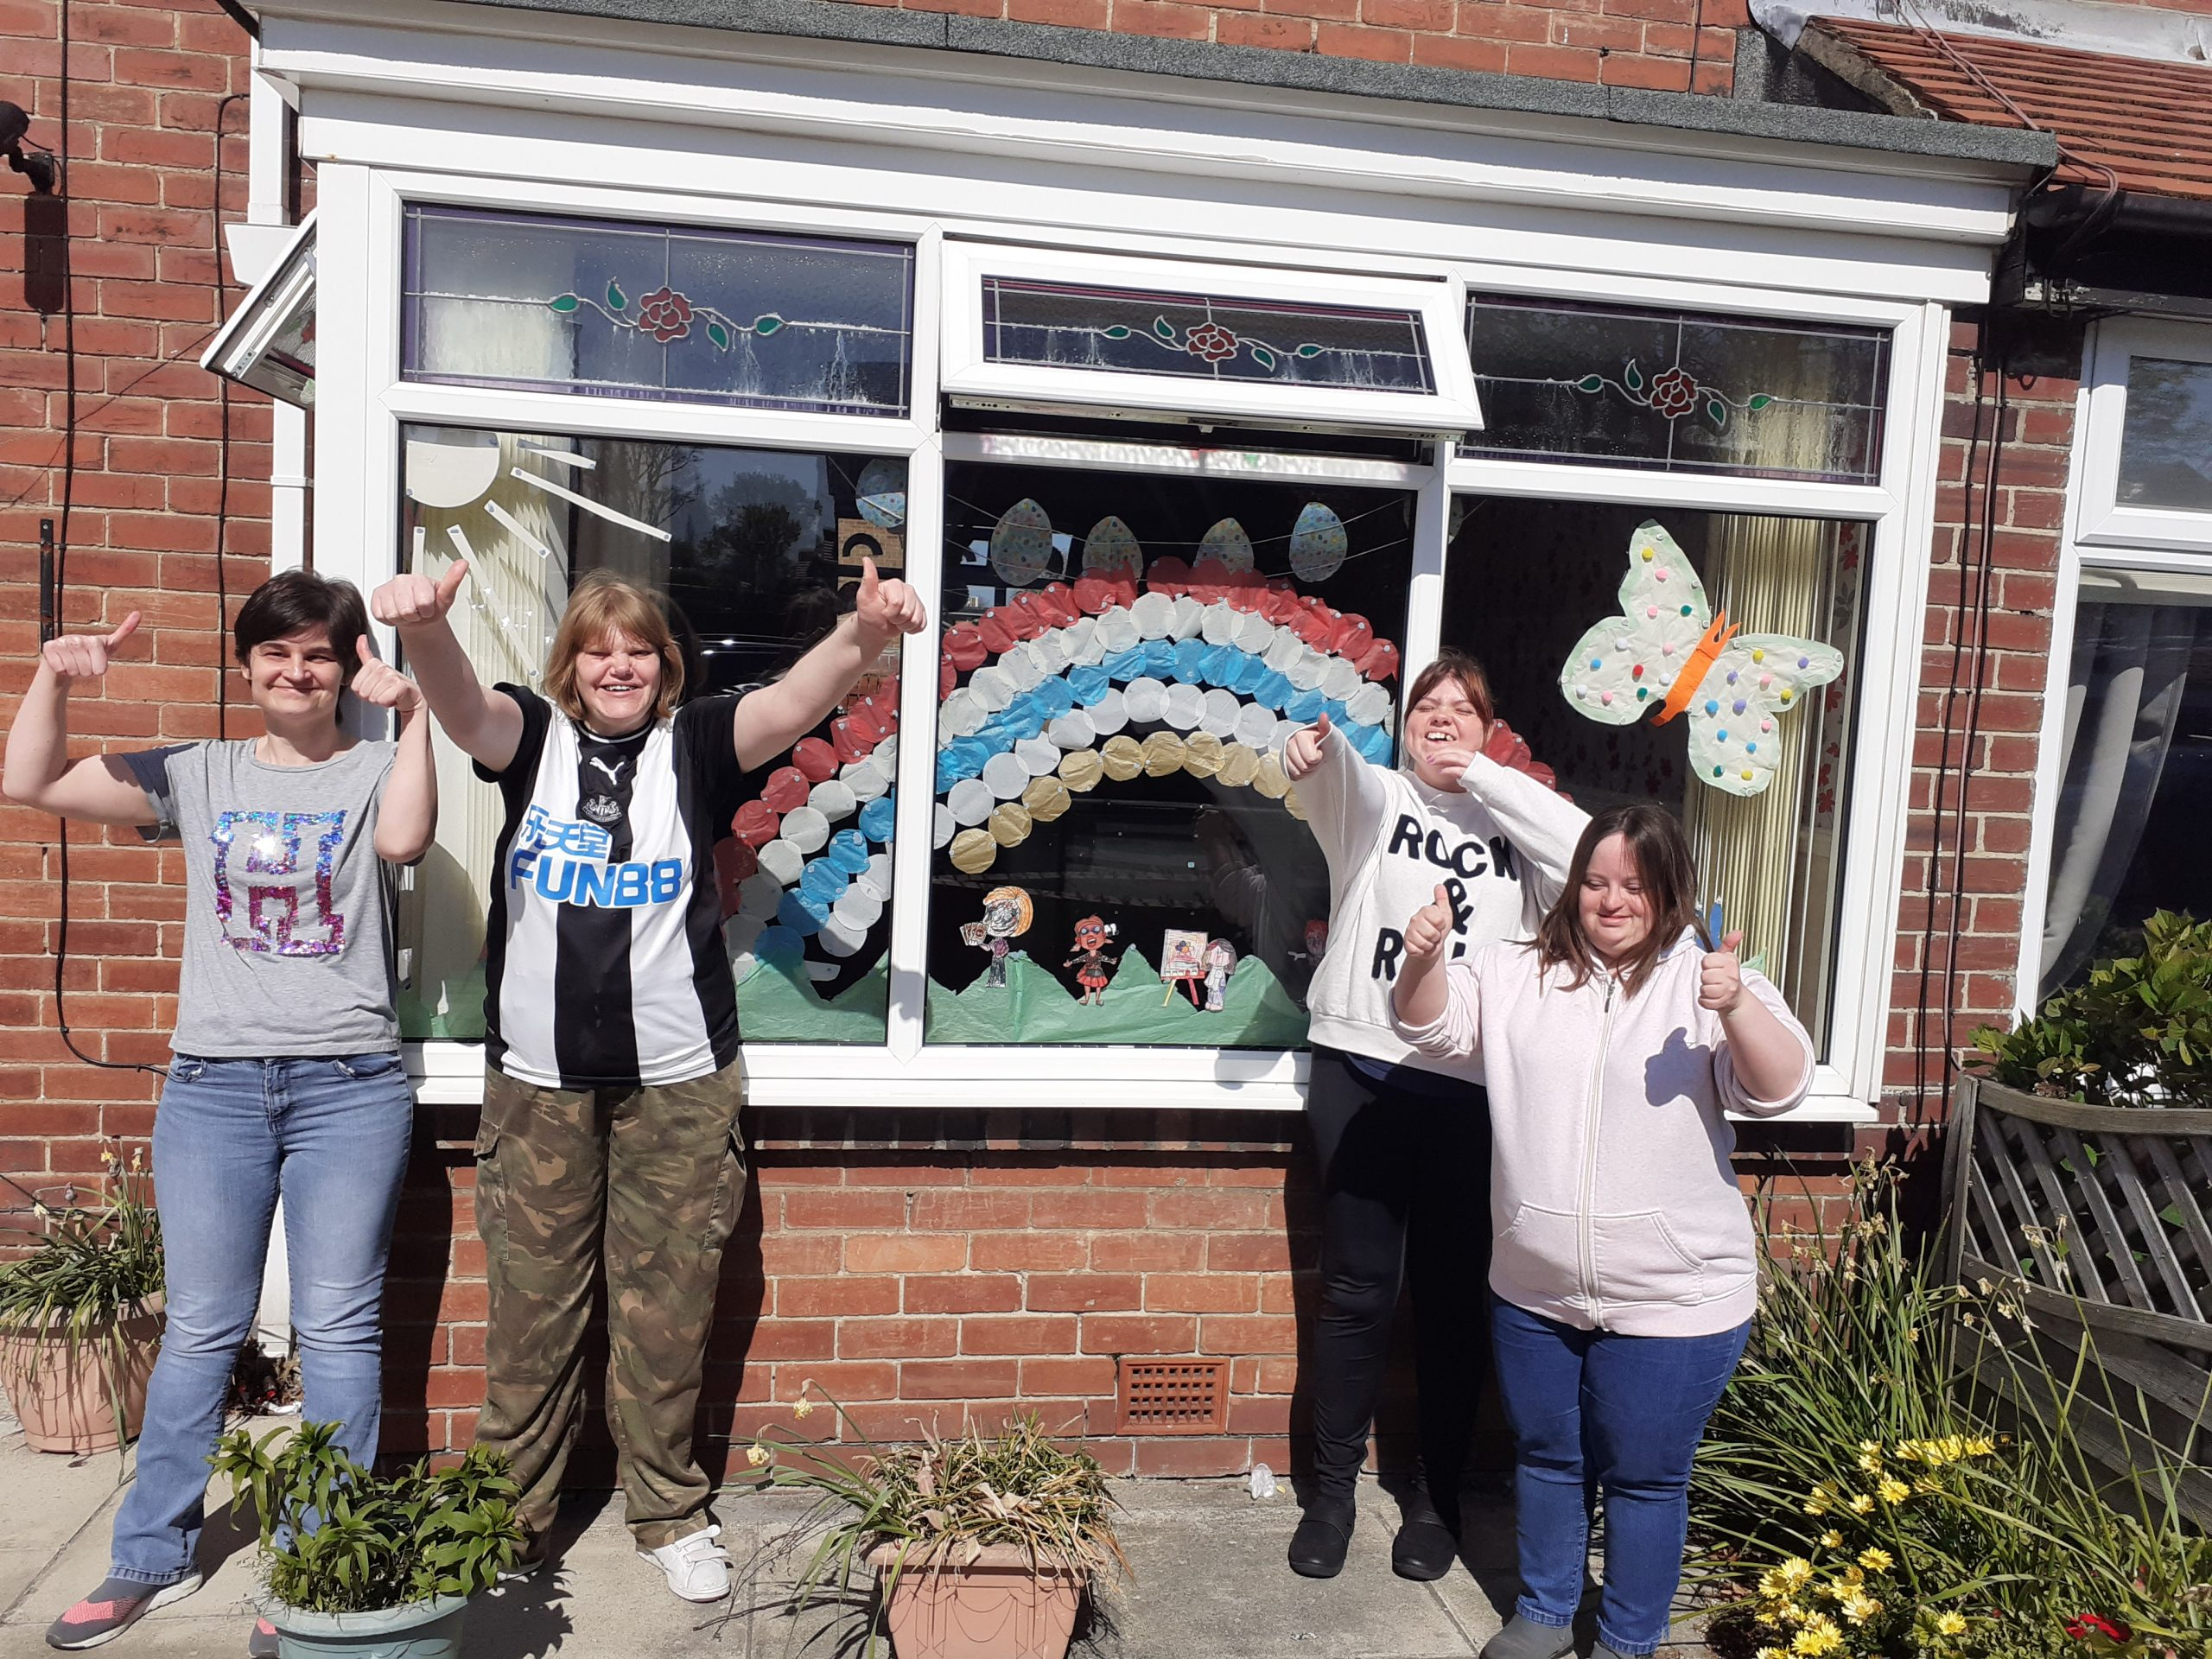 98% of Service Users are happy with their support from Creative Support